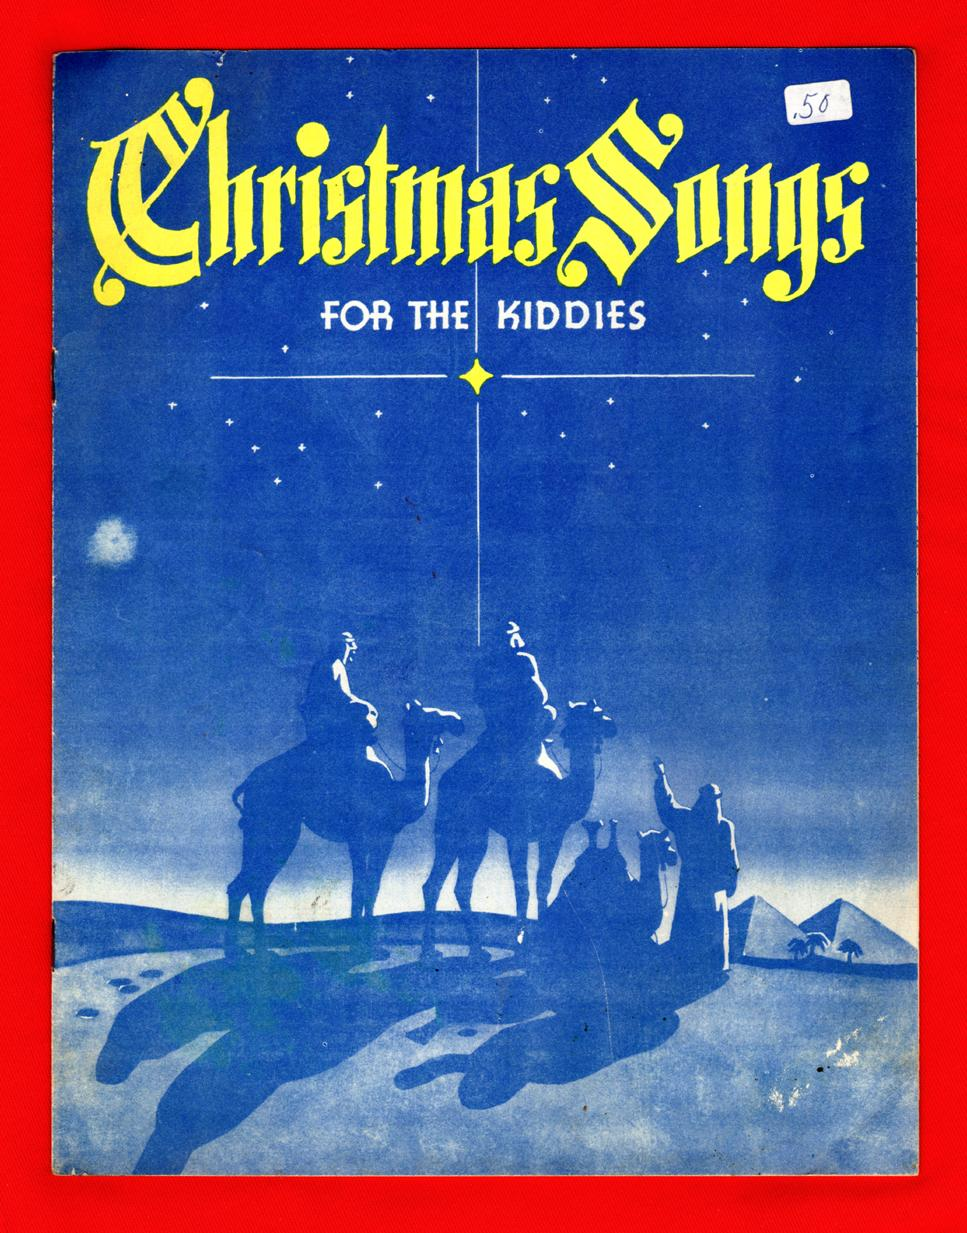 Christmas Songs For the Kiddies / 1950's Vintage Sheet Music and ...